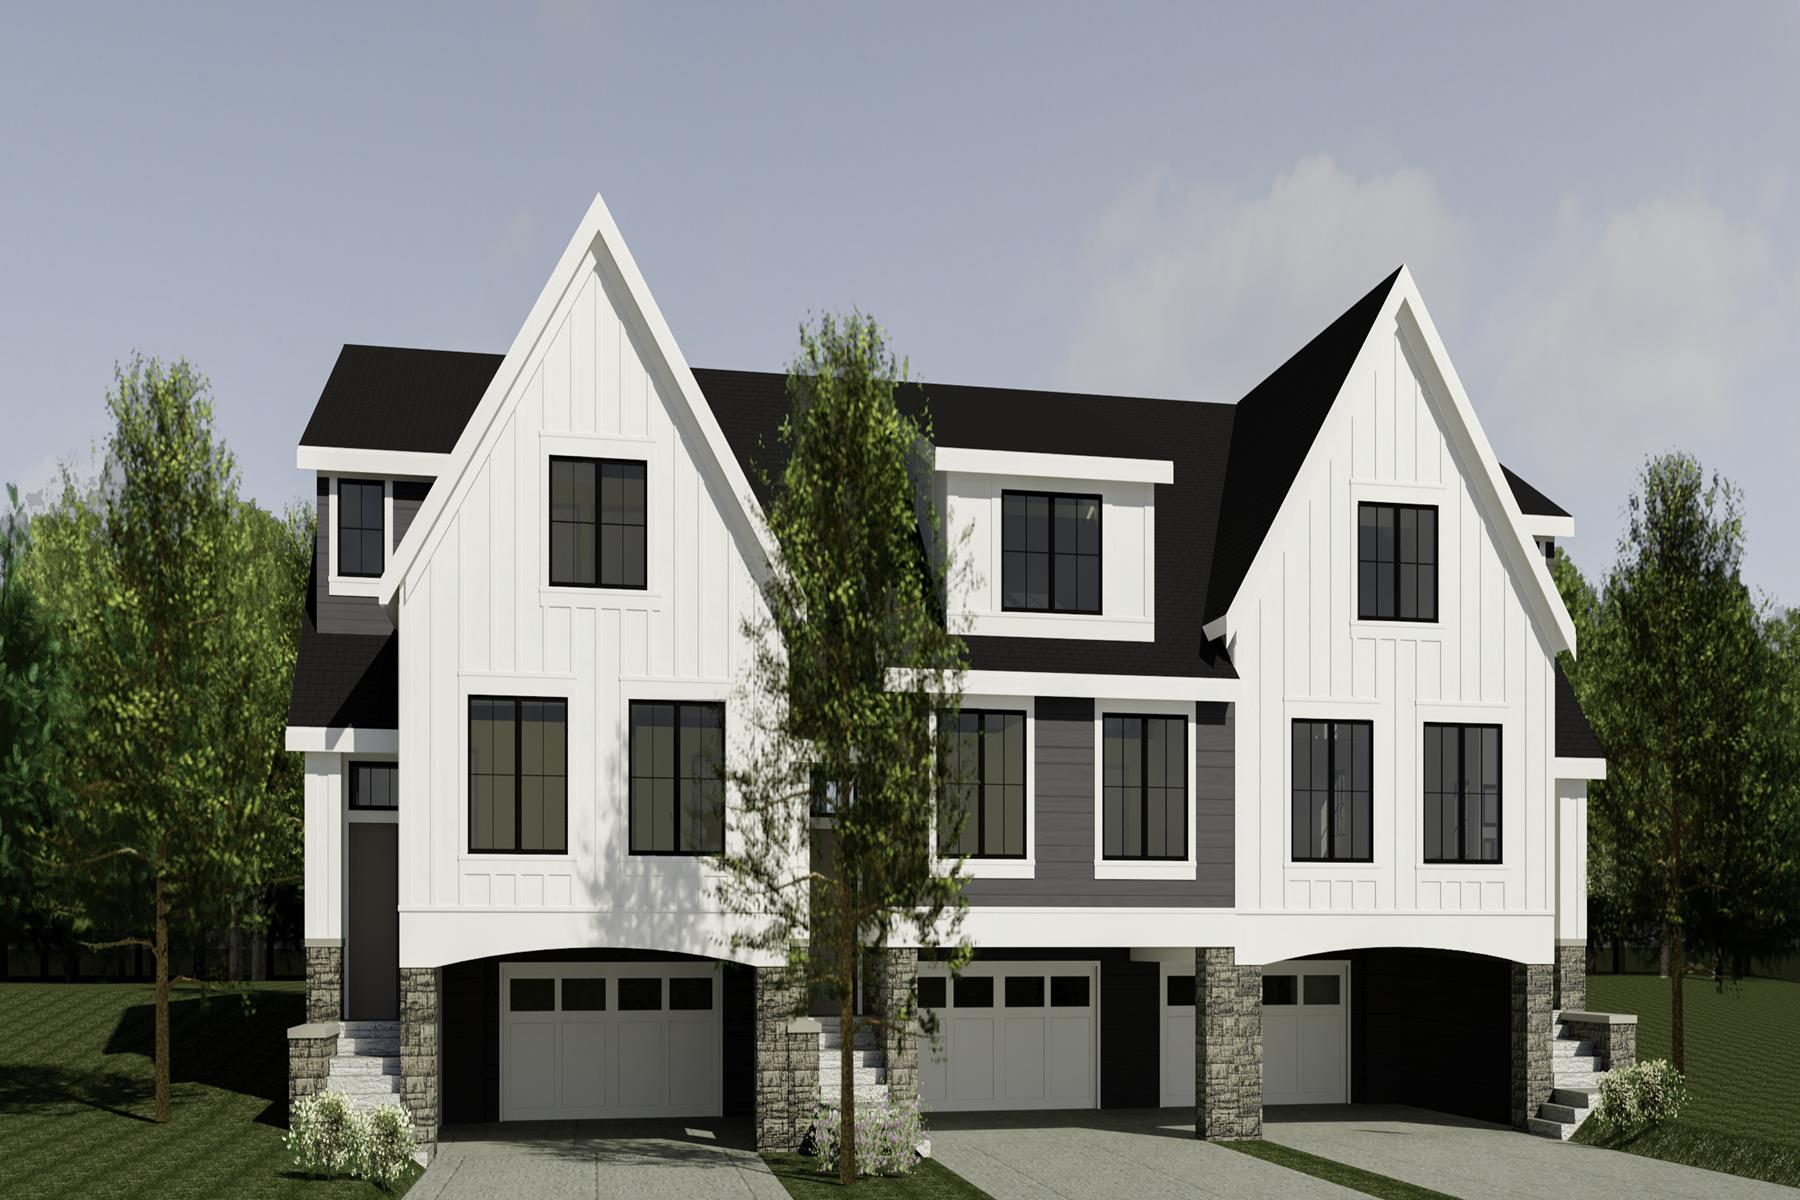 townhouses for Sale at Sheldon Place - New 10-unit Town Home Development In Eden Prairie 79xx Eden Prairie Road Eden Prairie, Minnesota 55347 United States